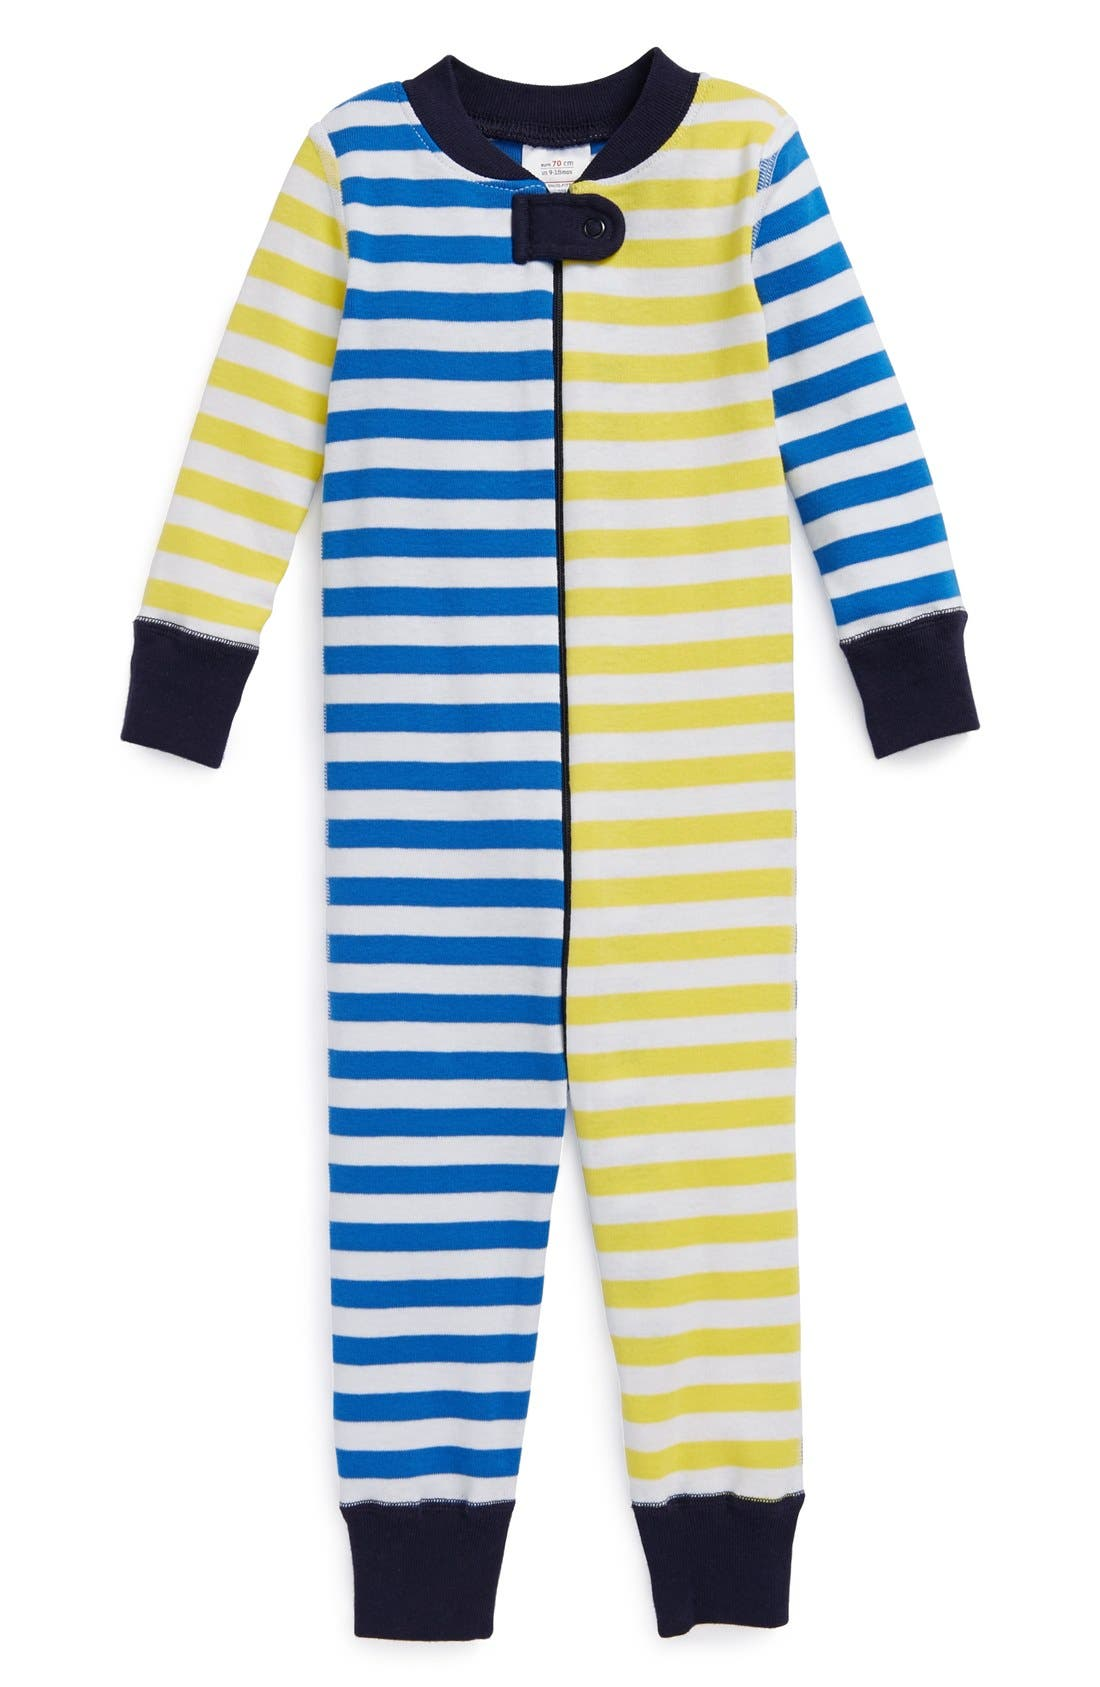 Main Image - Hanna Andersson 'Mix It Up' Fitted Organic Cotton Romper (Baby Boys)